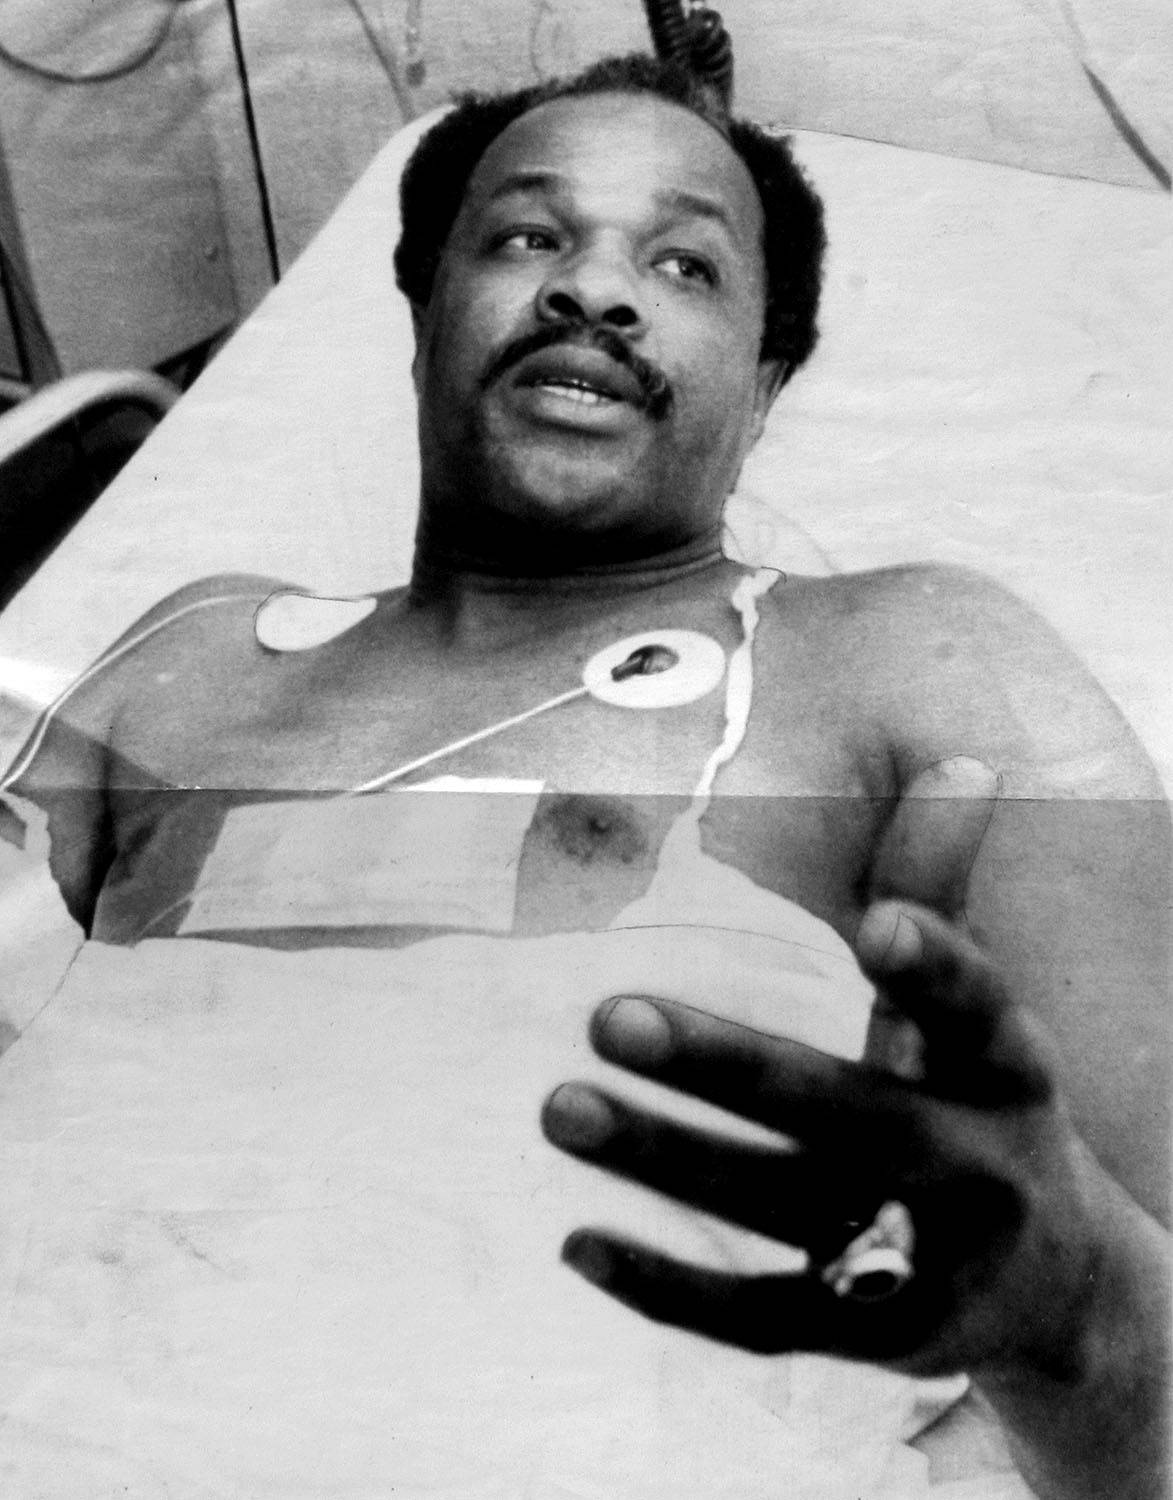 A Brush With Danger - In 1977, Barry was shot by Hanafi Muslims during a siege of the District Building, where he served as a city councilman. Luckily, his wounds were only superficial and his hospital stay brief.   (Photo: Afro American Newspapers/Gado/Getty Images)